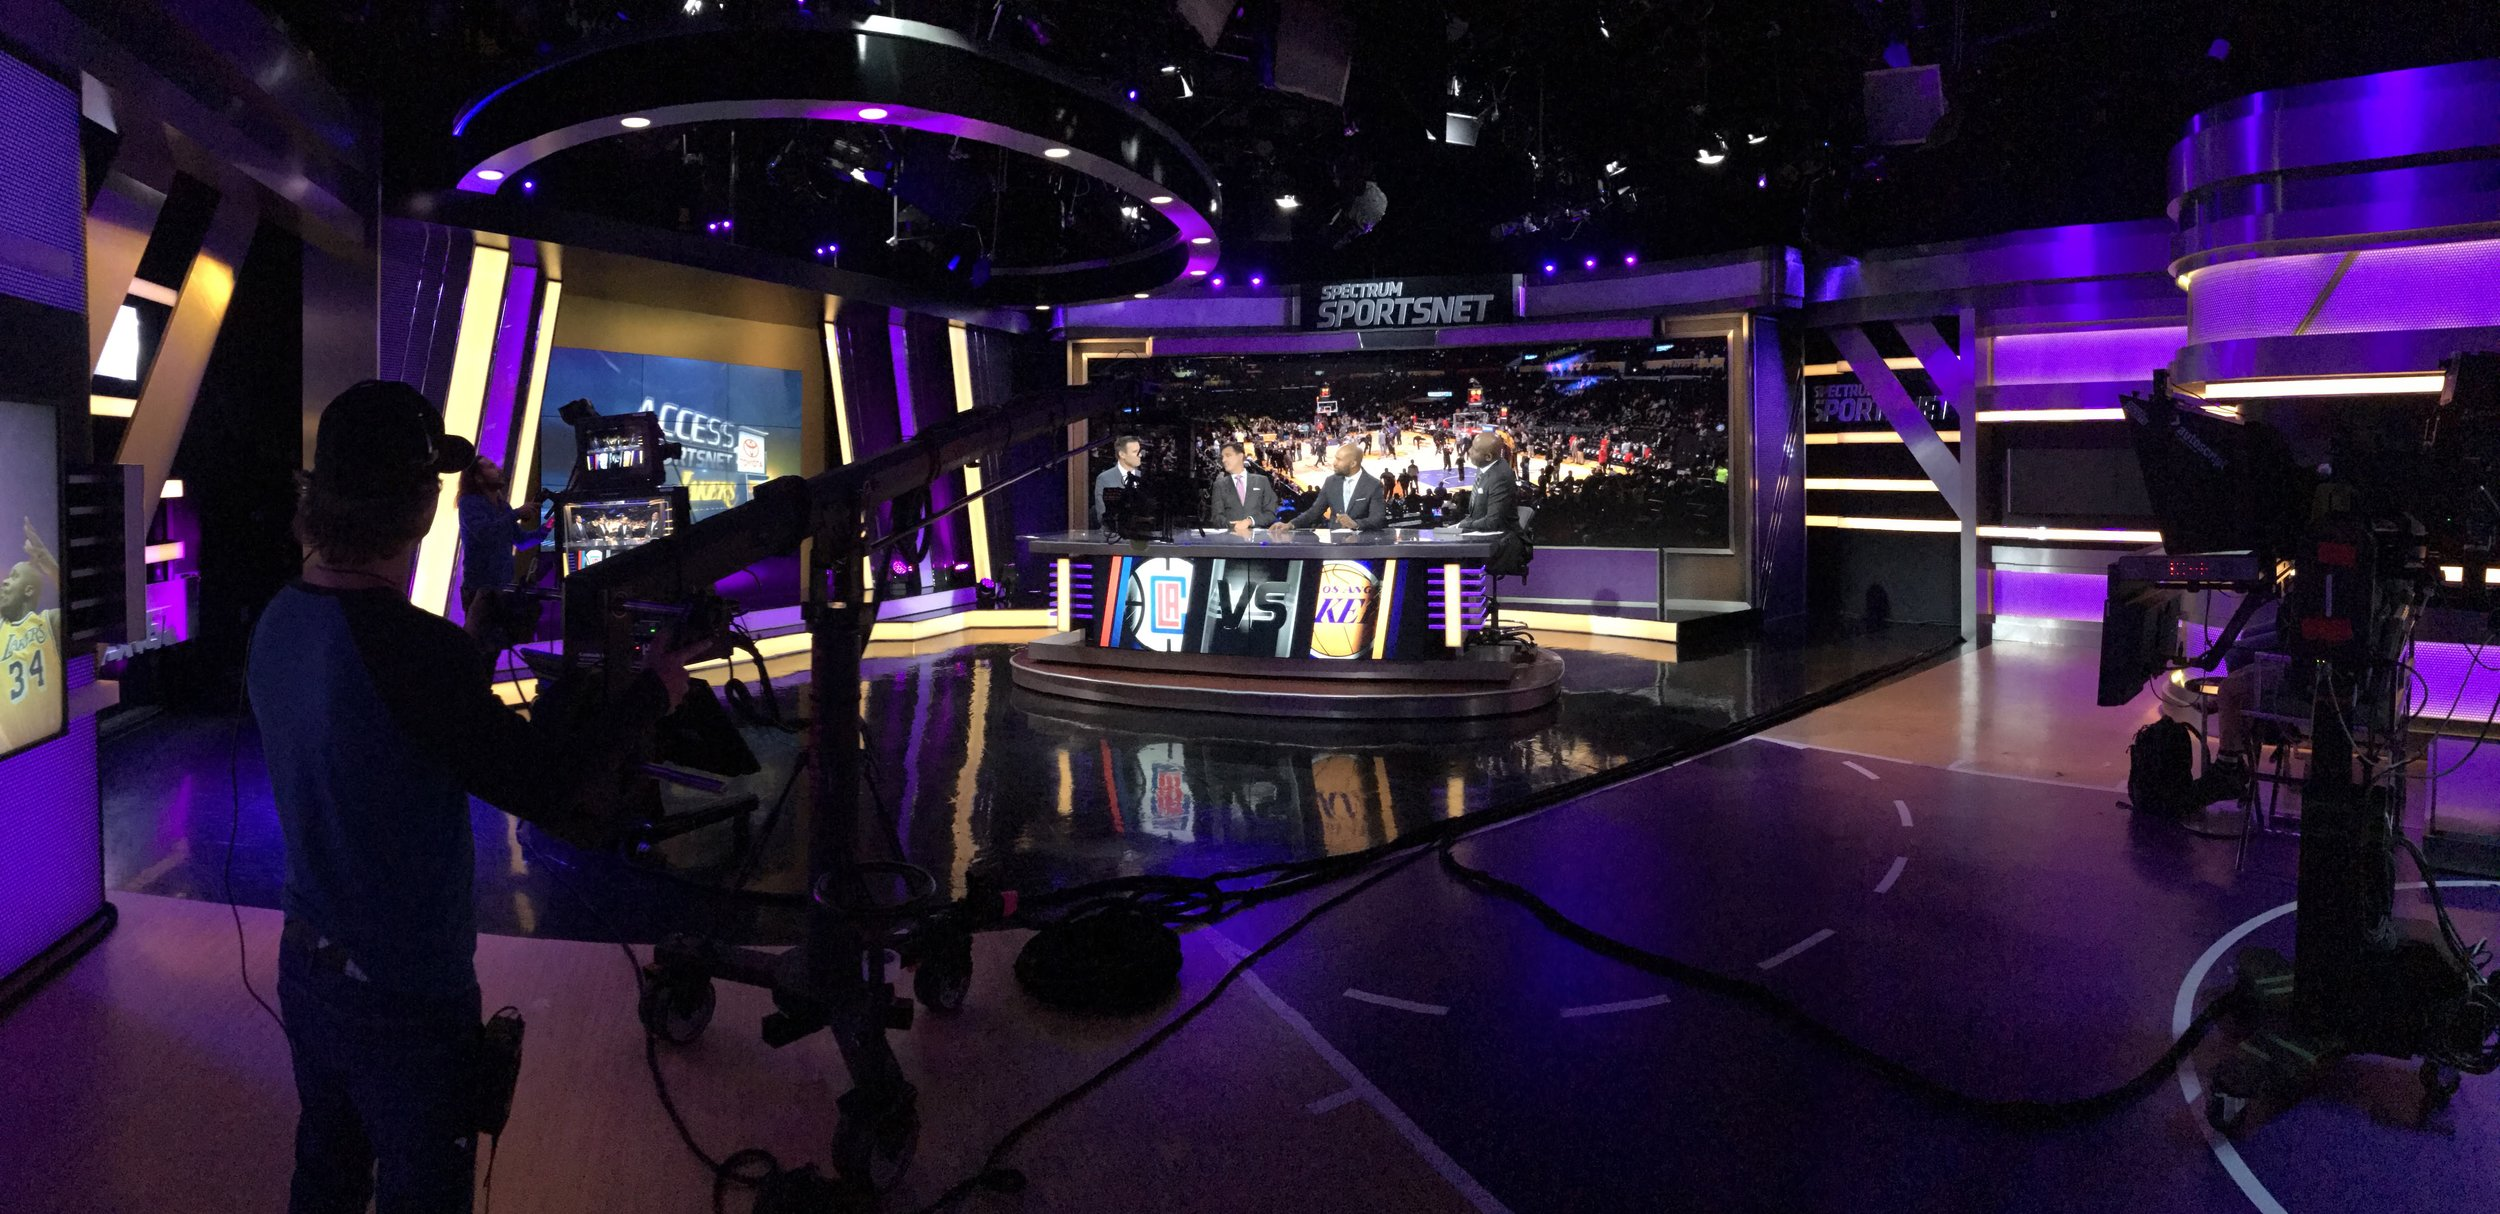 On set watching James Worthy and crew cover the Lakers - Access SportNet Lakers, Spectrum Studios L.A.